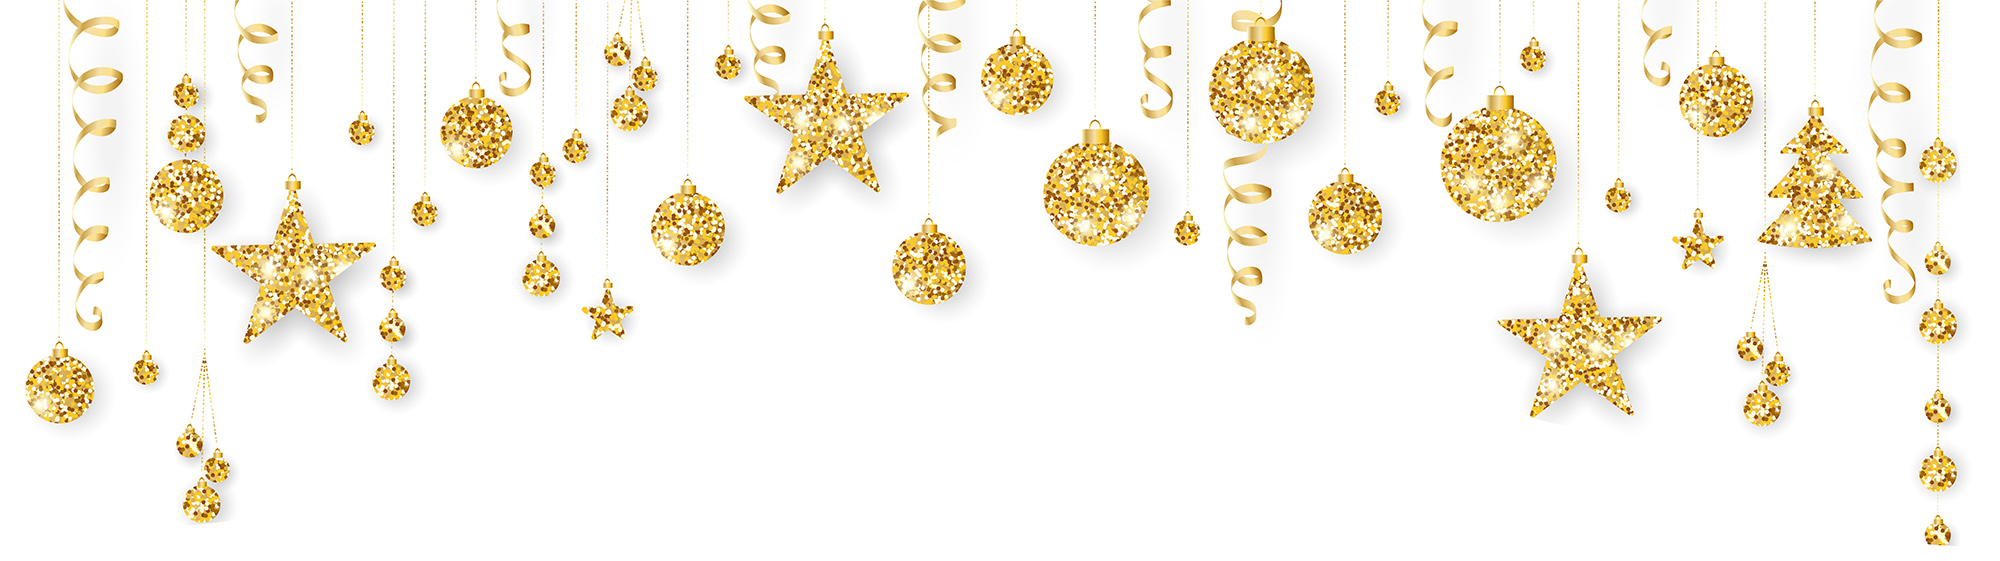 baubles golden shiny shimmer decorations christmas